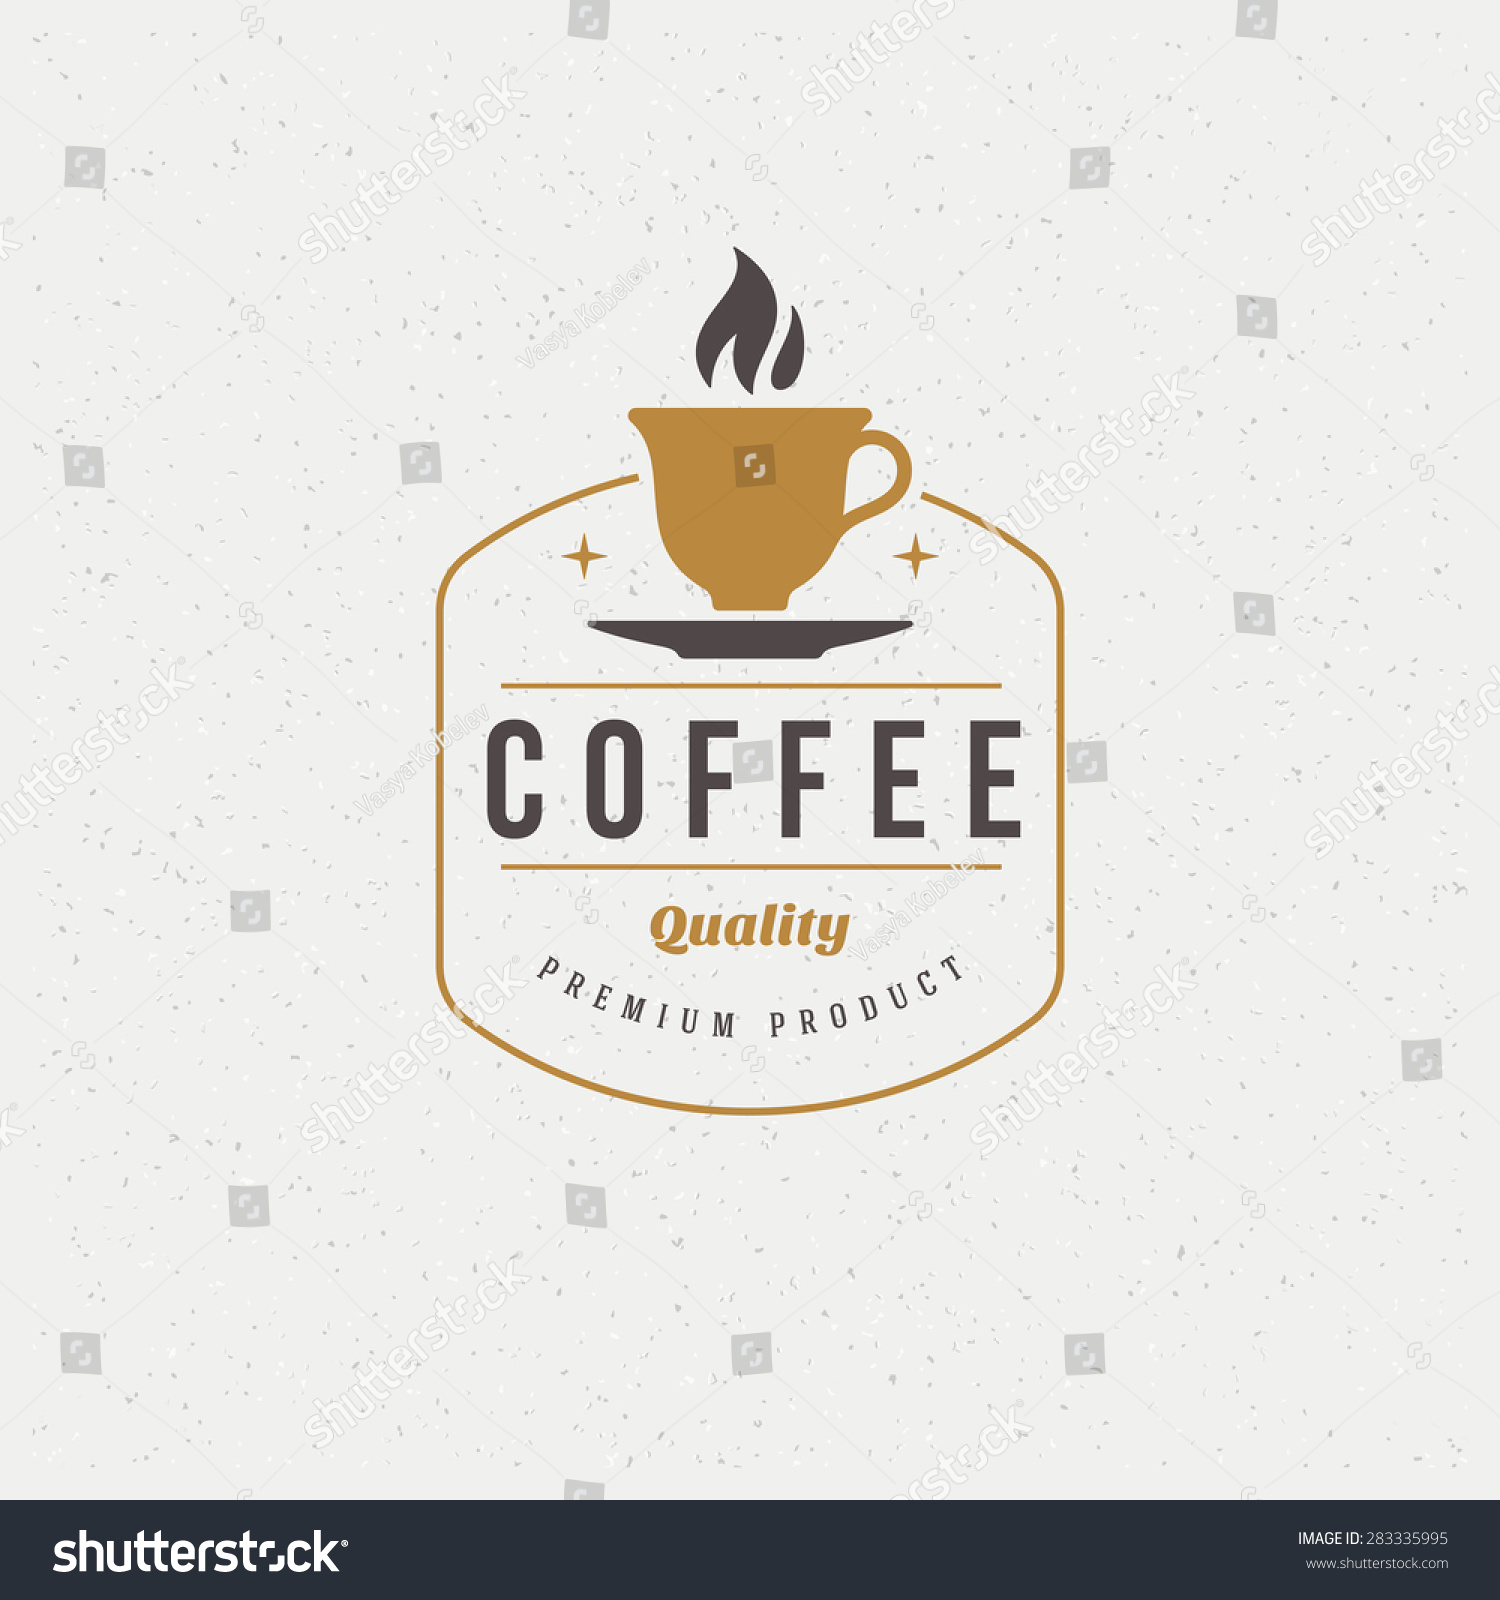 HD wallpapers coffee shop logo design